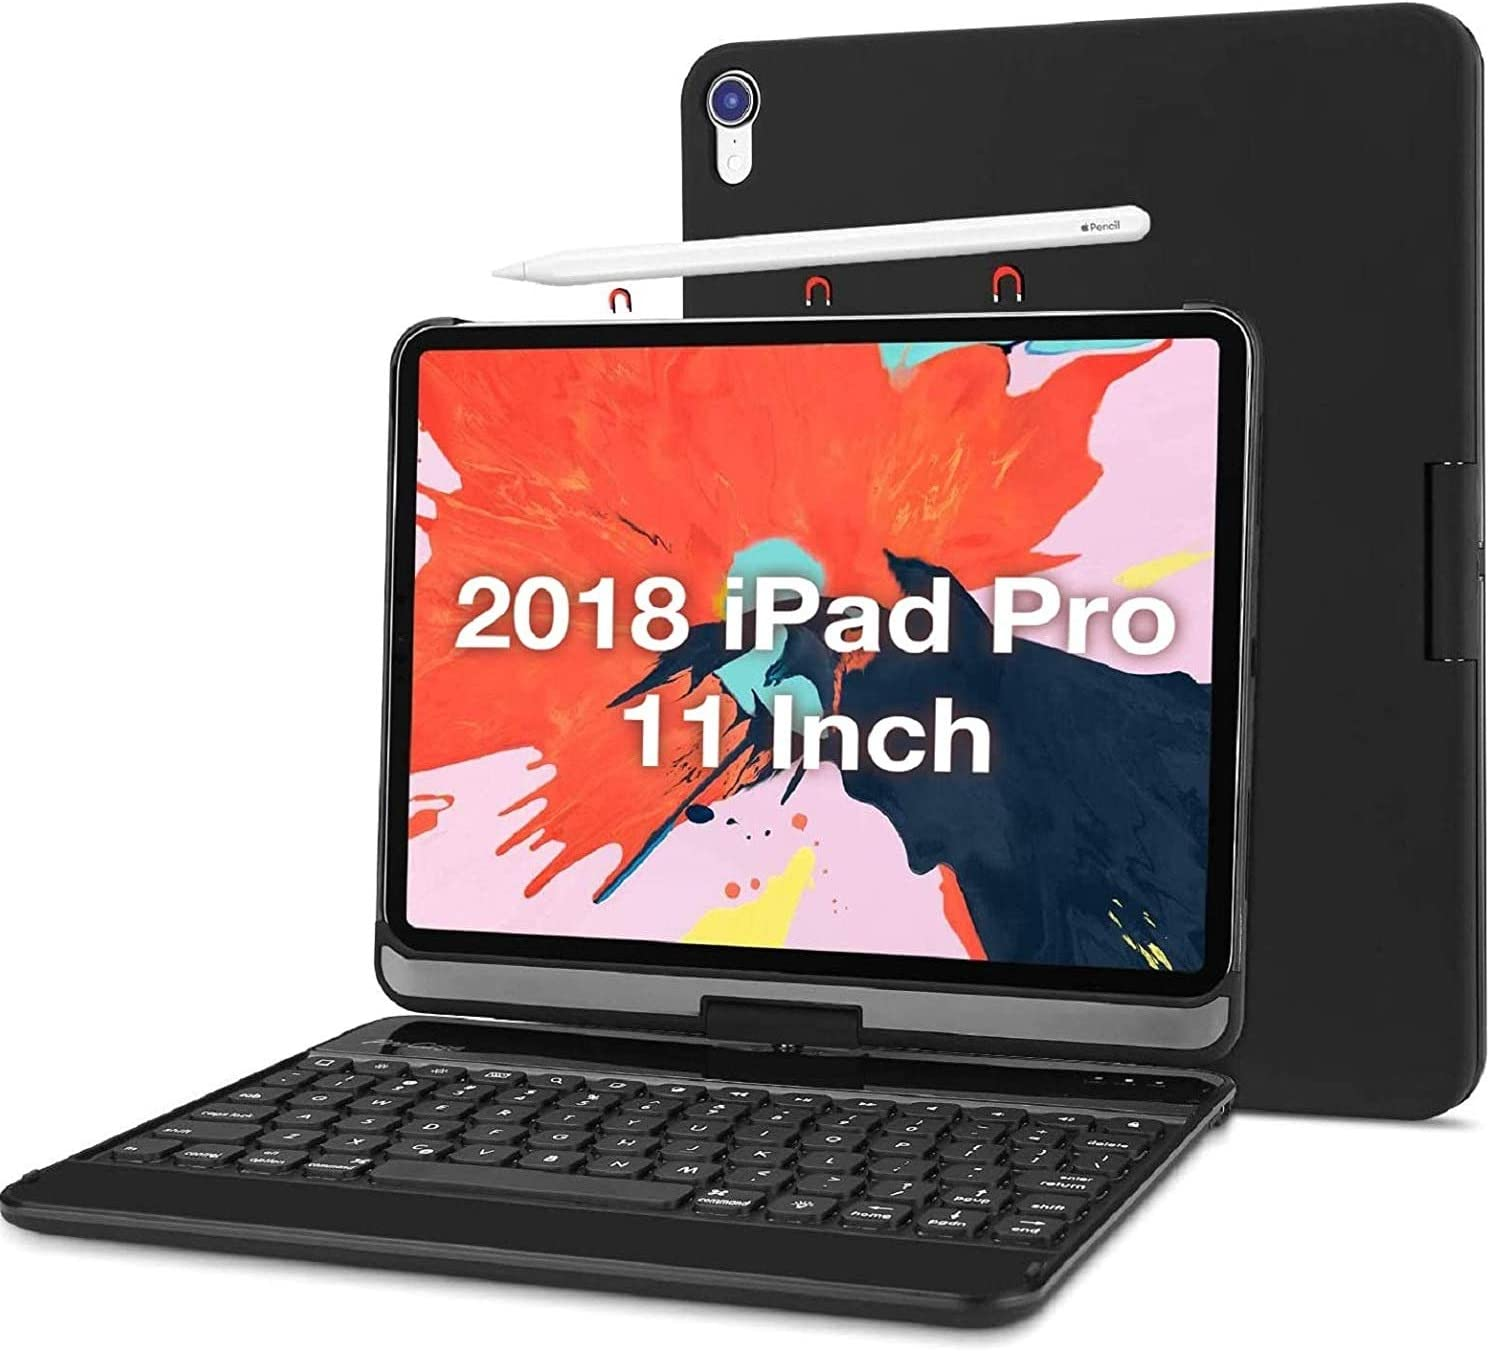 ProCase iPad Pro 11 Keyboard Case 2018 [Old Model] [Support Apple Pencil Charging], 360 Degree Rotation Swivel Cover Case with Wireless Keyboard for Apple iPad Pro 11 Inch 2018 Release -Black